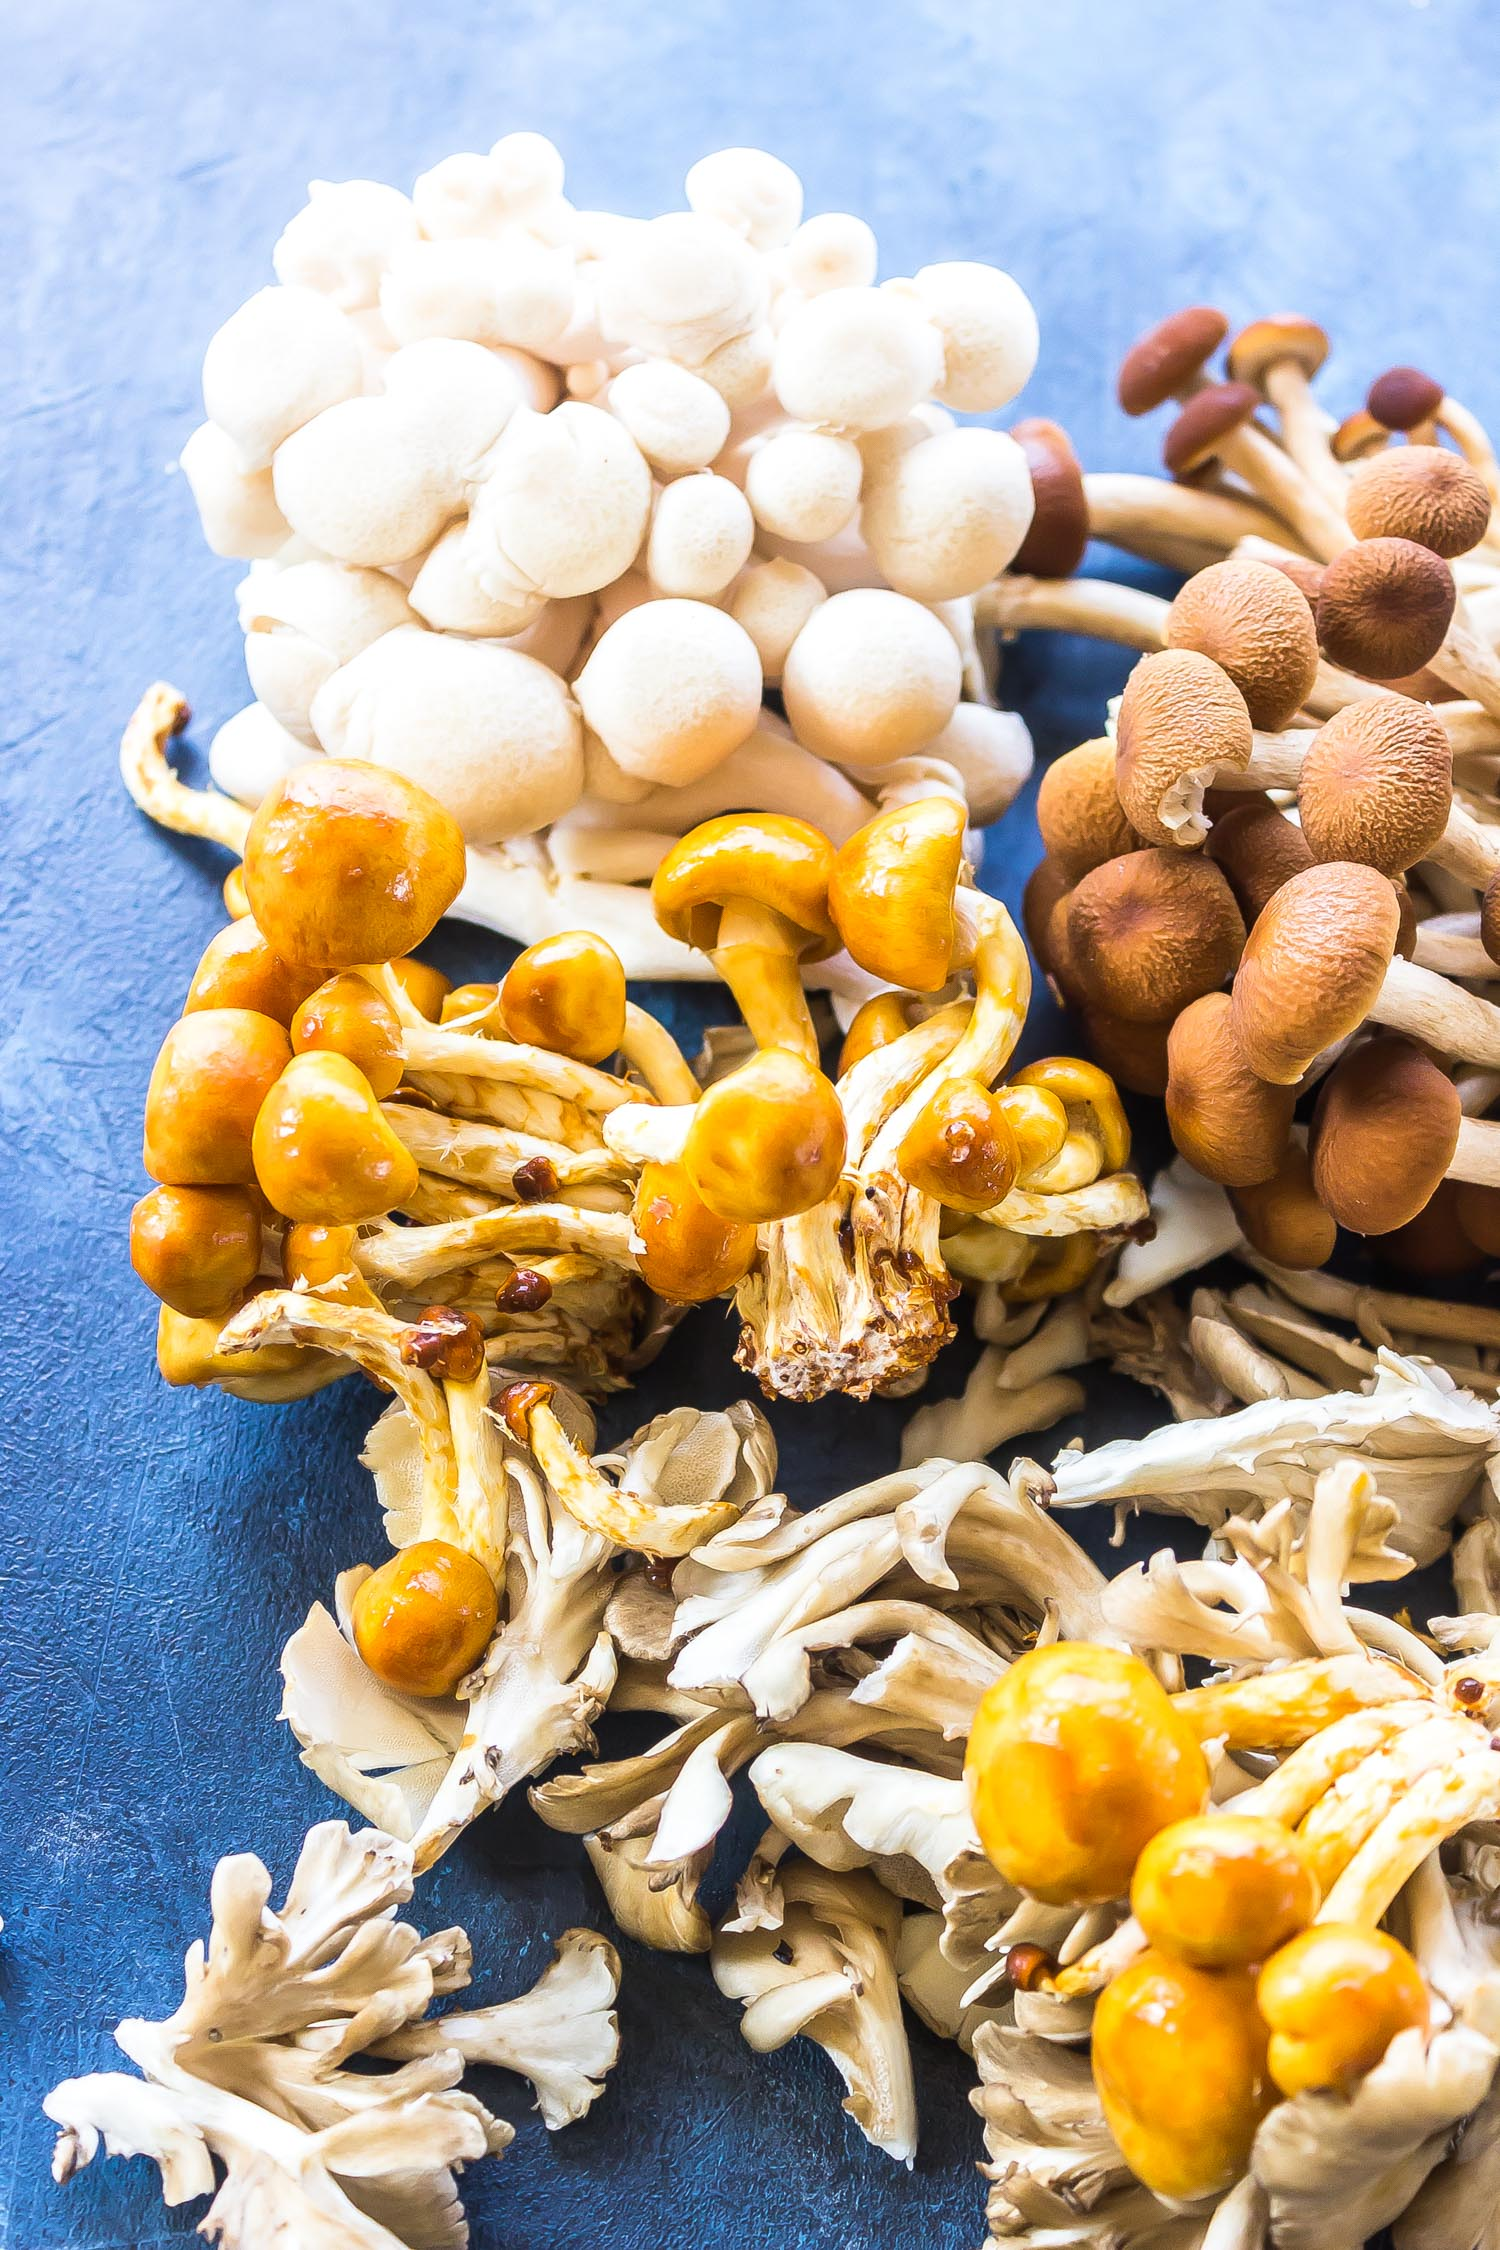 an assortment of wild mushrooms on a blue background